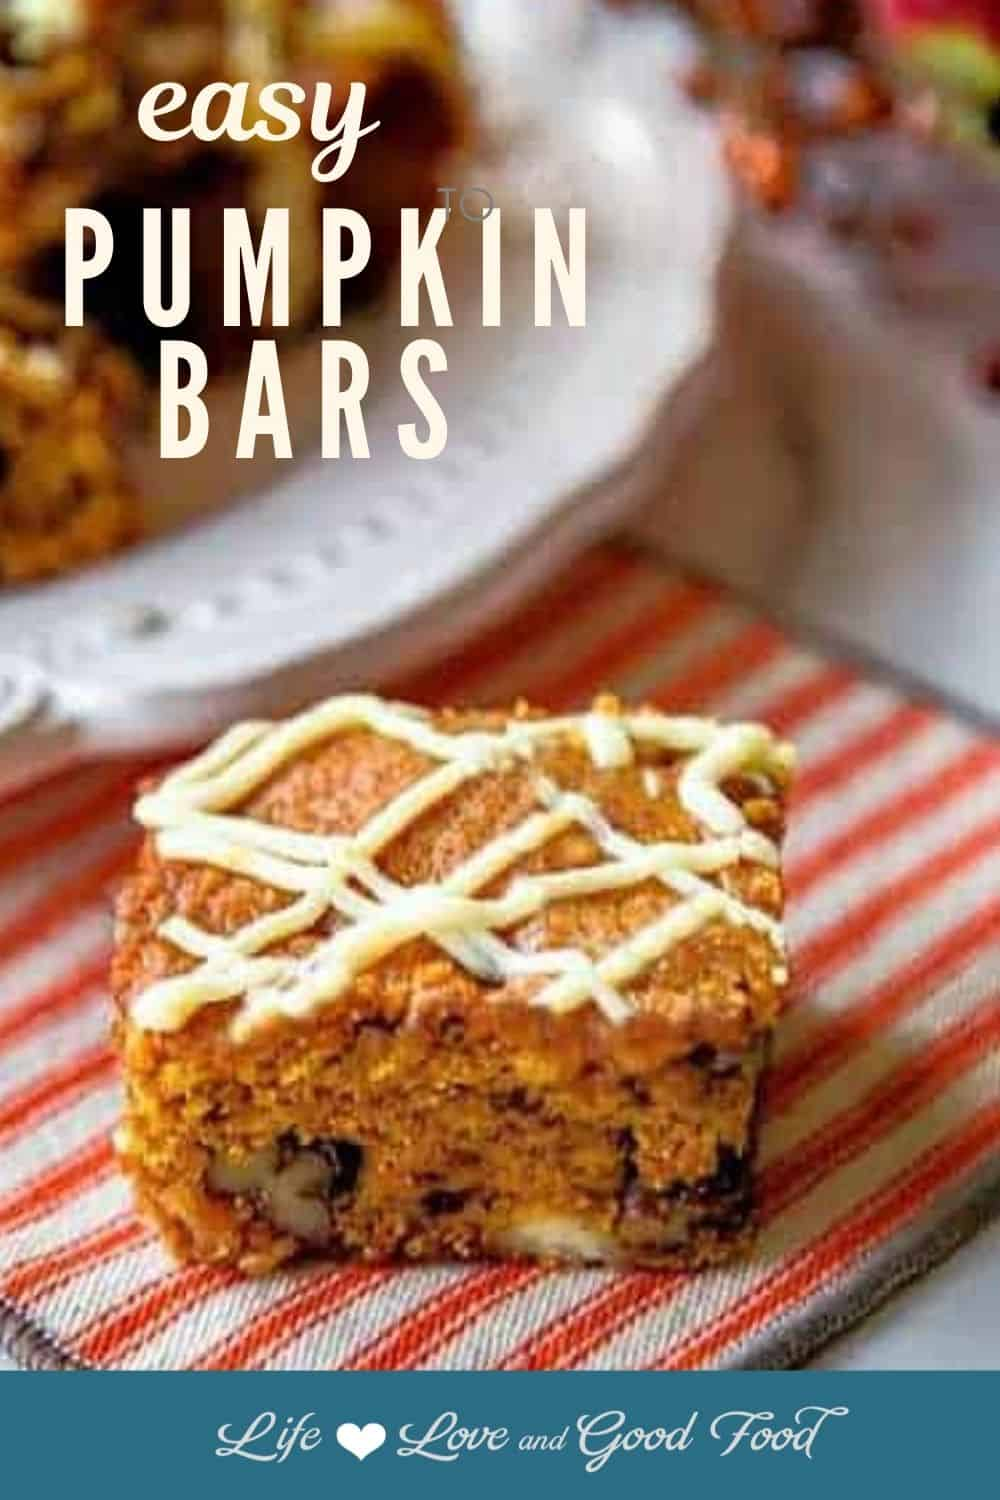 These EASY Pumpkin Bars with white chocolate drizzle are moist and delicious with just the right amount of spice from cinnamon, ginger, nutmeg, and cloves. #easydessert #pumpkin